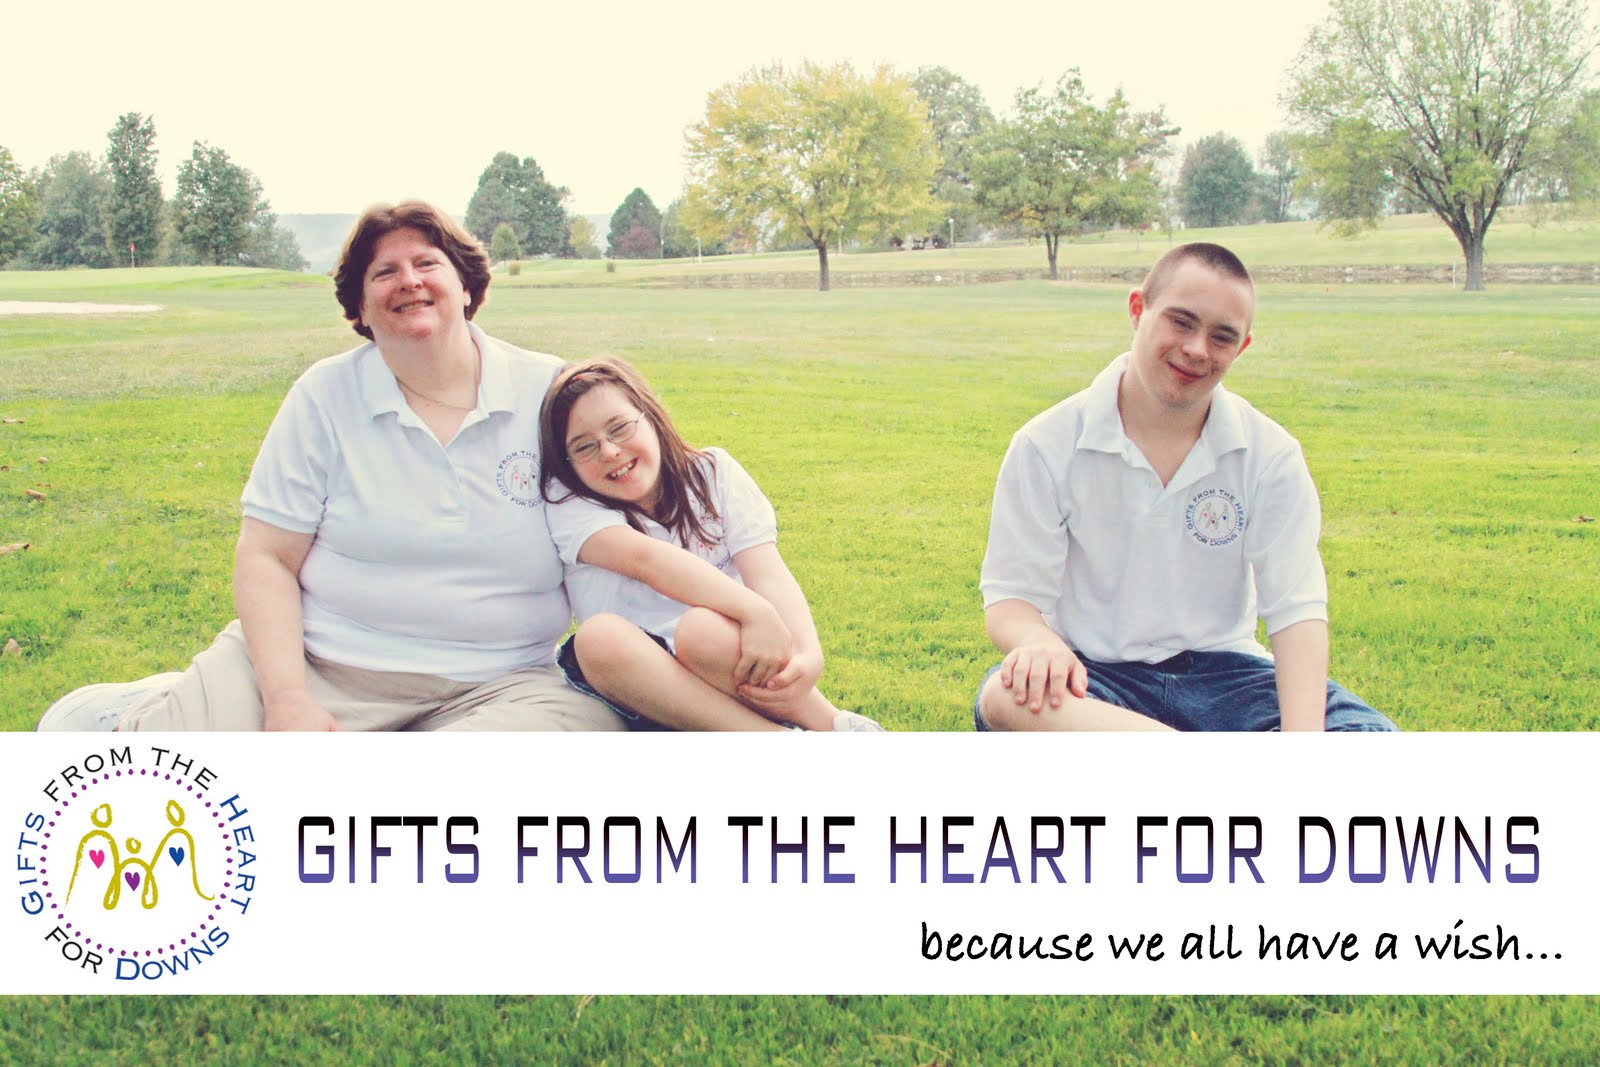 Gifts From the Heart For Downs